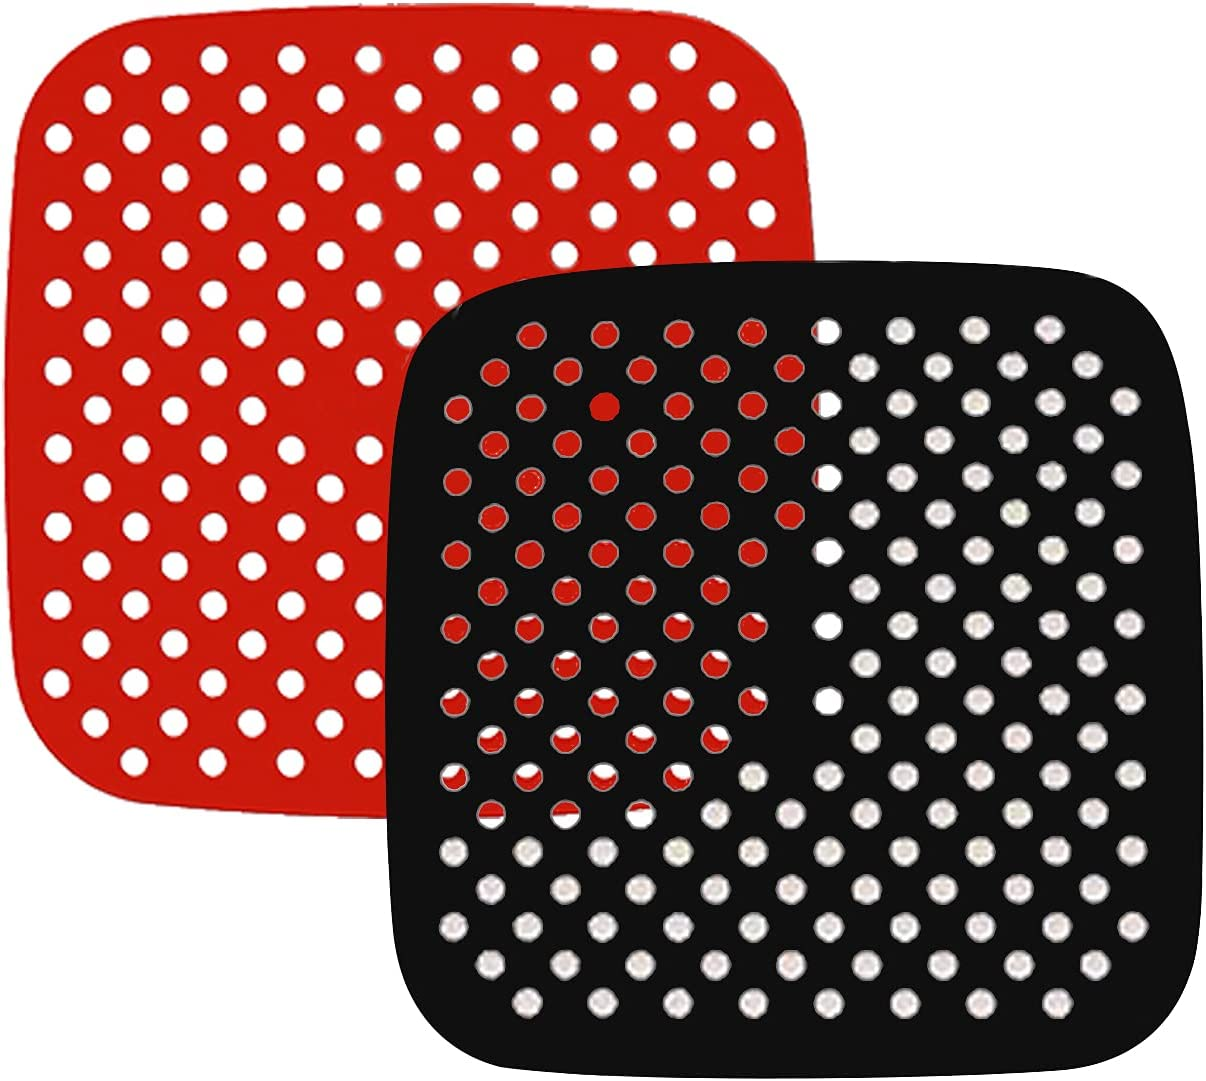 ZEPELOFFY 2 Pack 8.5 Inch Square Air Fryer Liners, Reusable Food-Grade Silicone Mat, Non-stick Heat Resistant Air Fryer Accessories